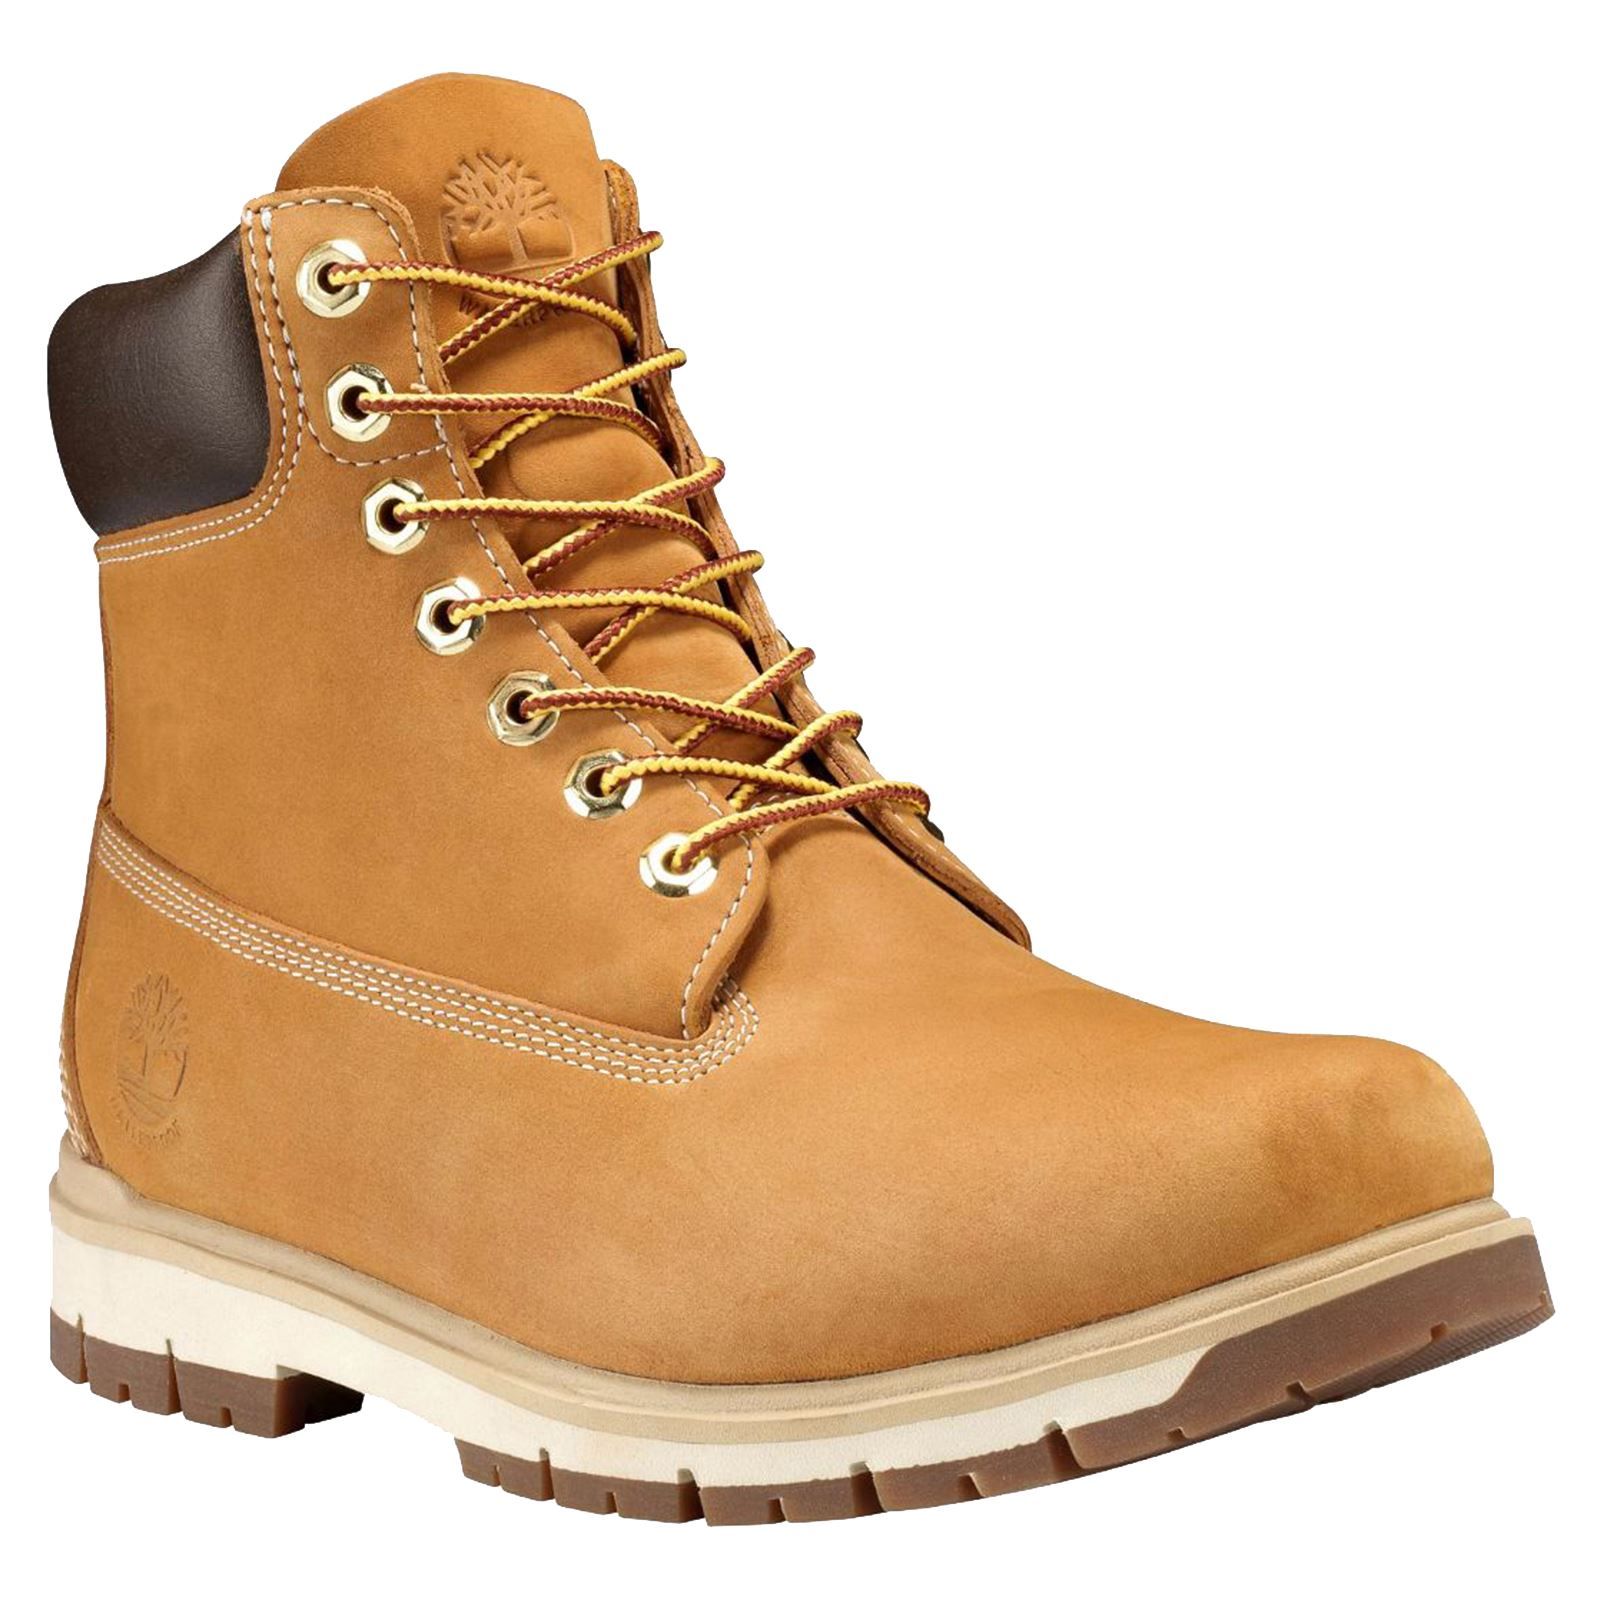 Timberland Redford 6 Inch Waterproof Boots